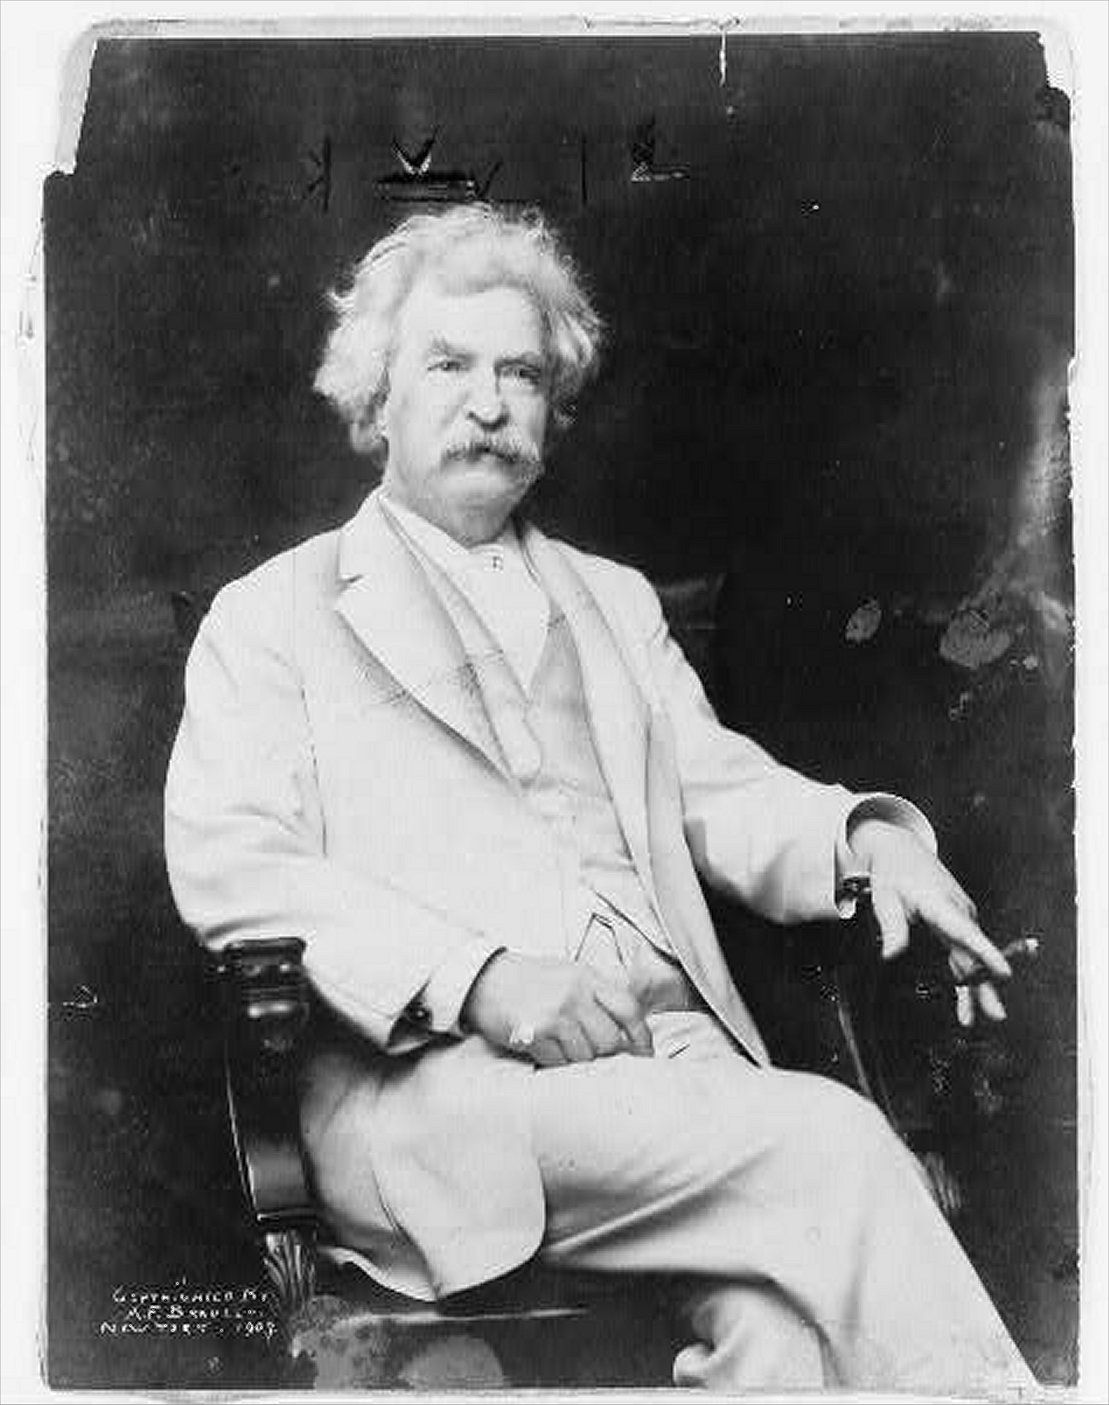 mark twain style of writing Mark twain is known for his repeated use of pointed satire and his use of vernacular dialogue, as well as his calculated yet carefree writing style, imagery, and use of child heroes in some of his most famous novels.